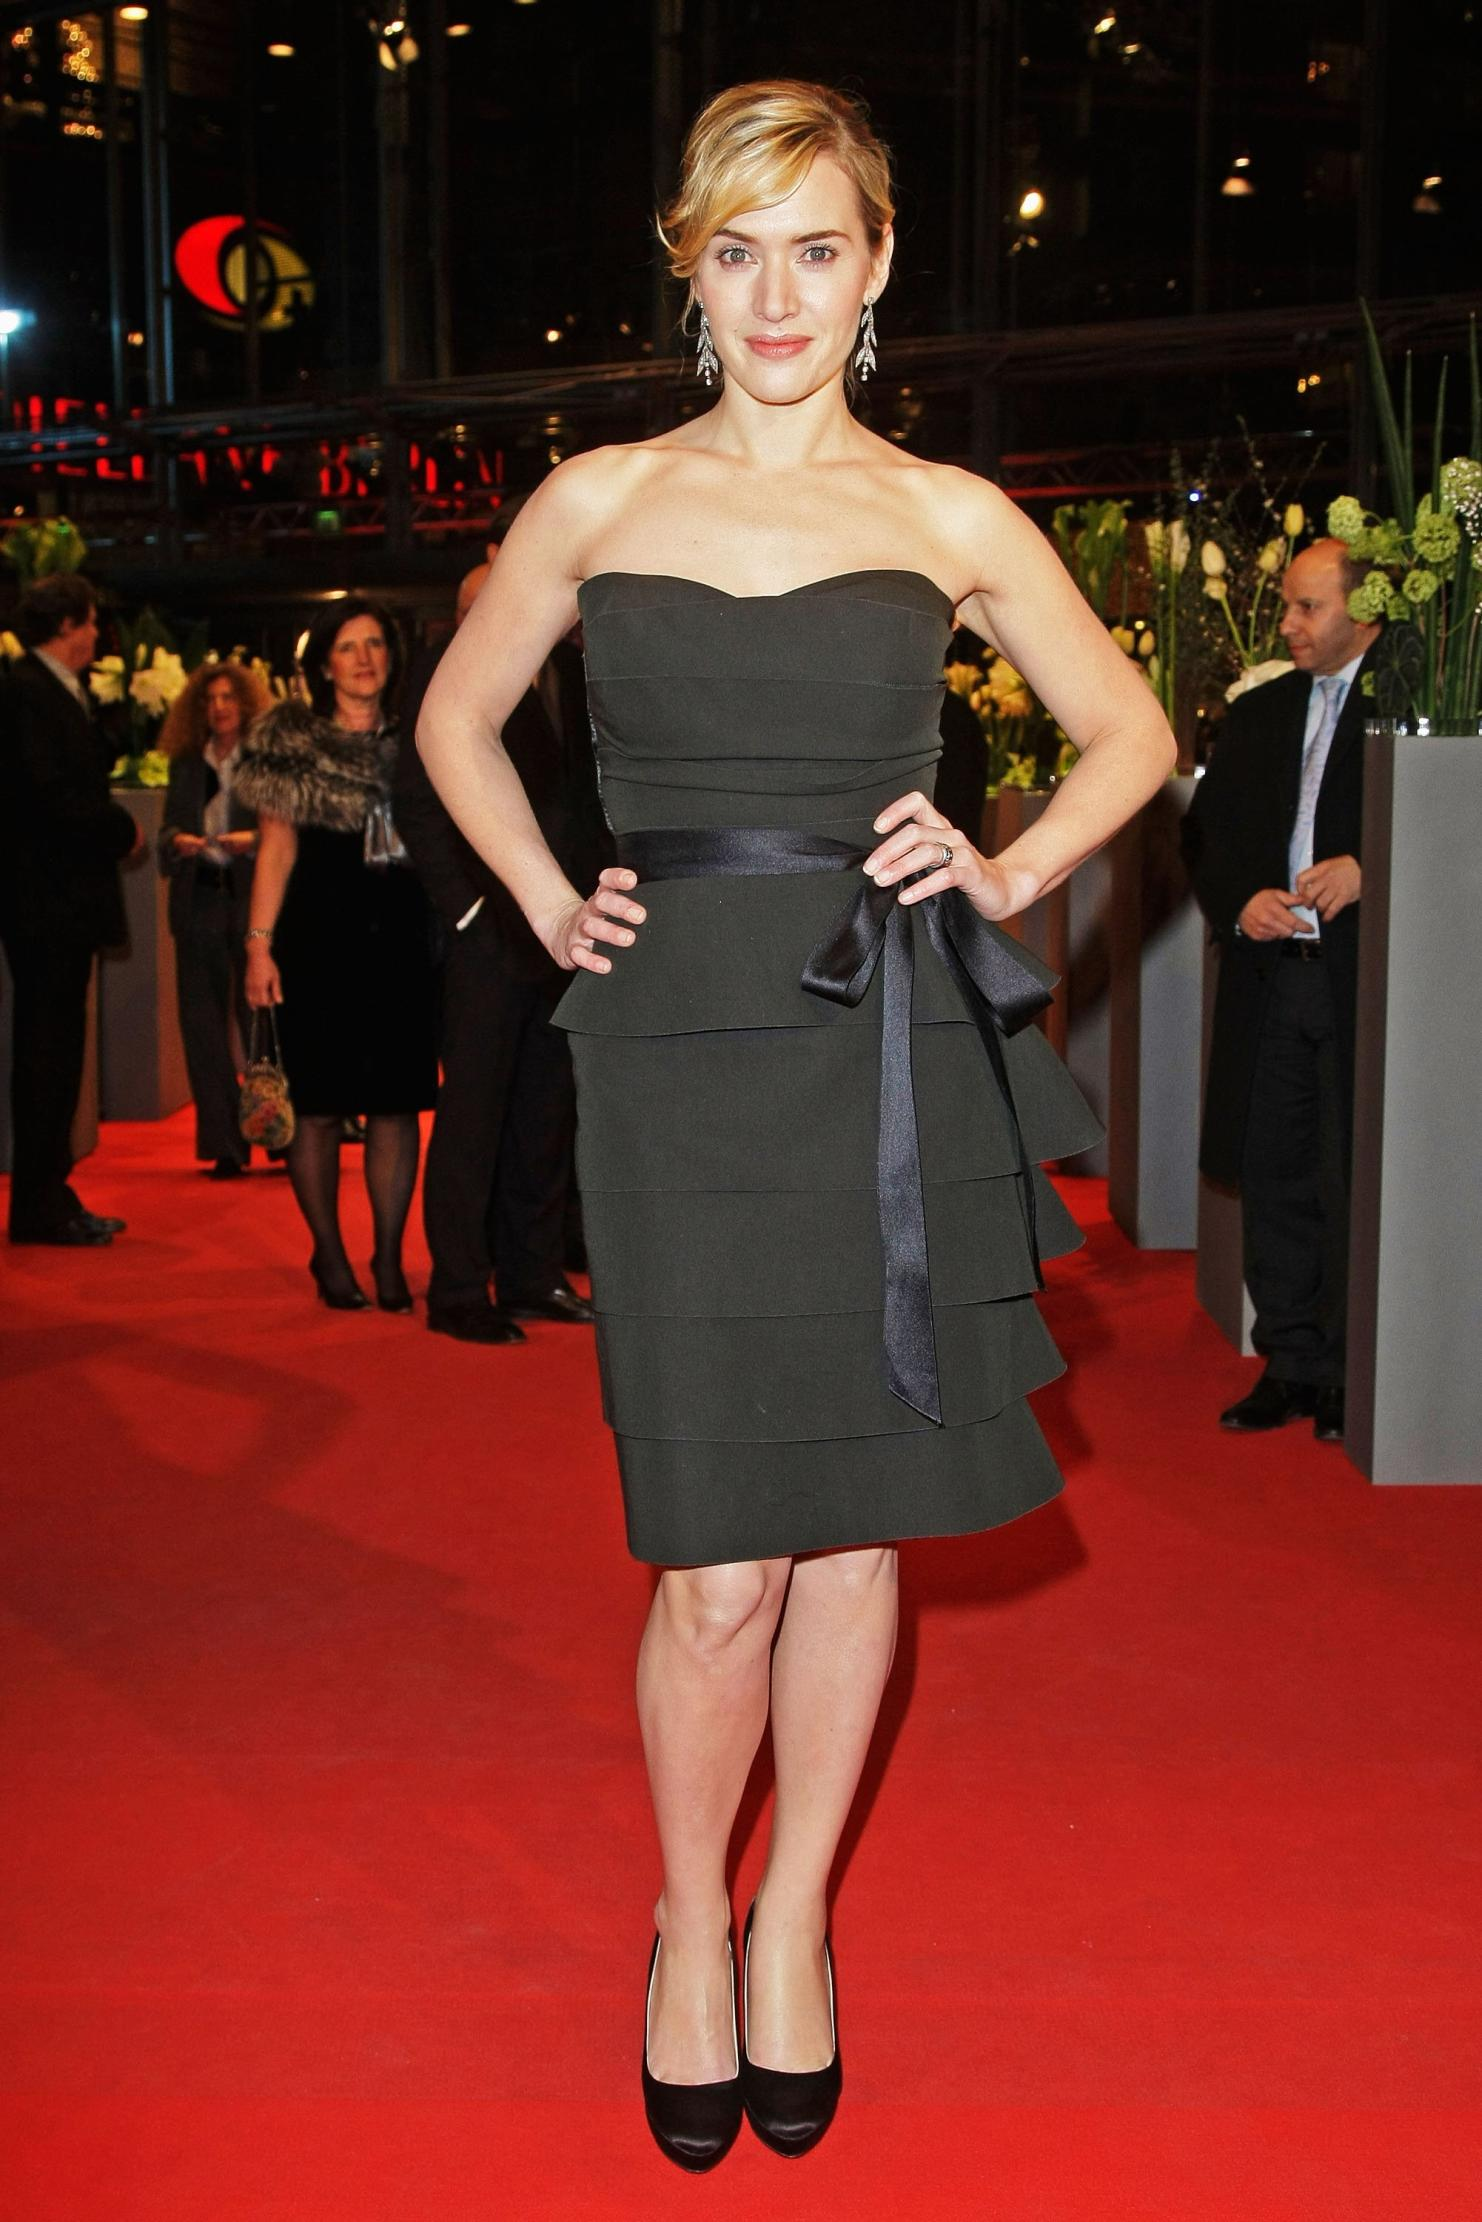 Kate Winslet Biography >> 30+ Kate Winslet Hot & Sexy In Bikini Pictures & Photos